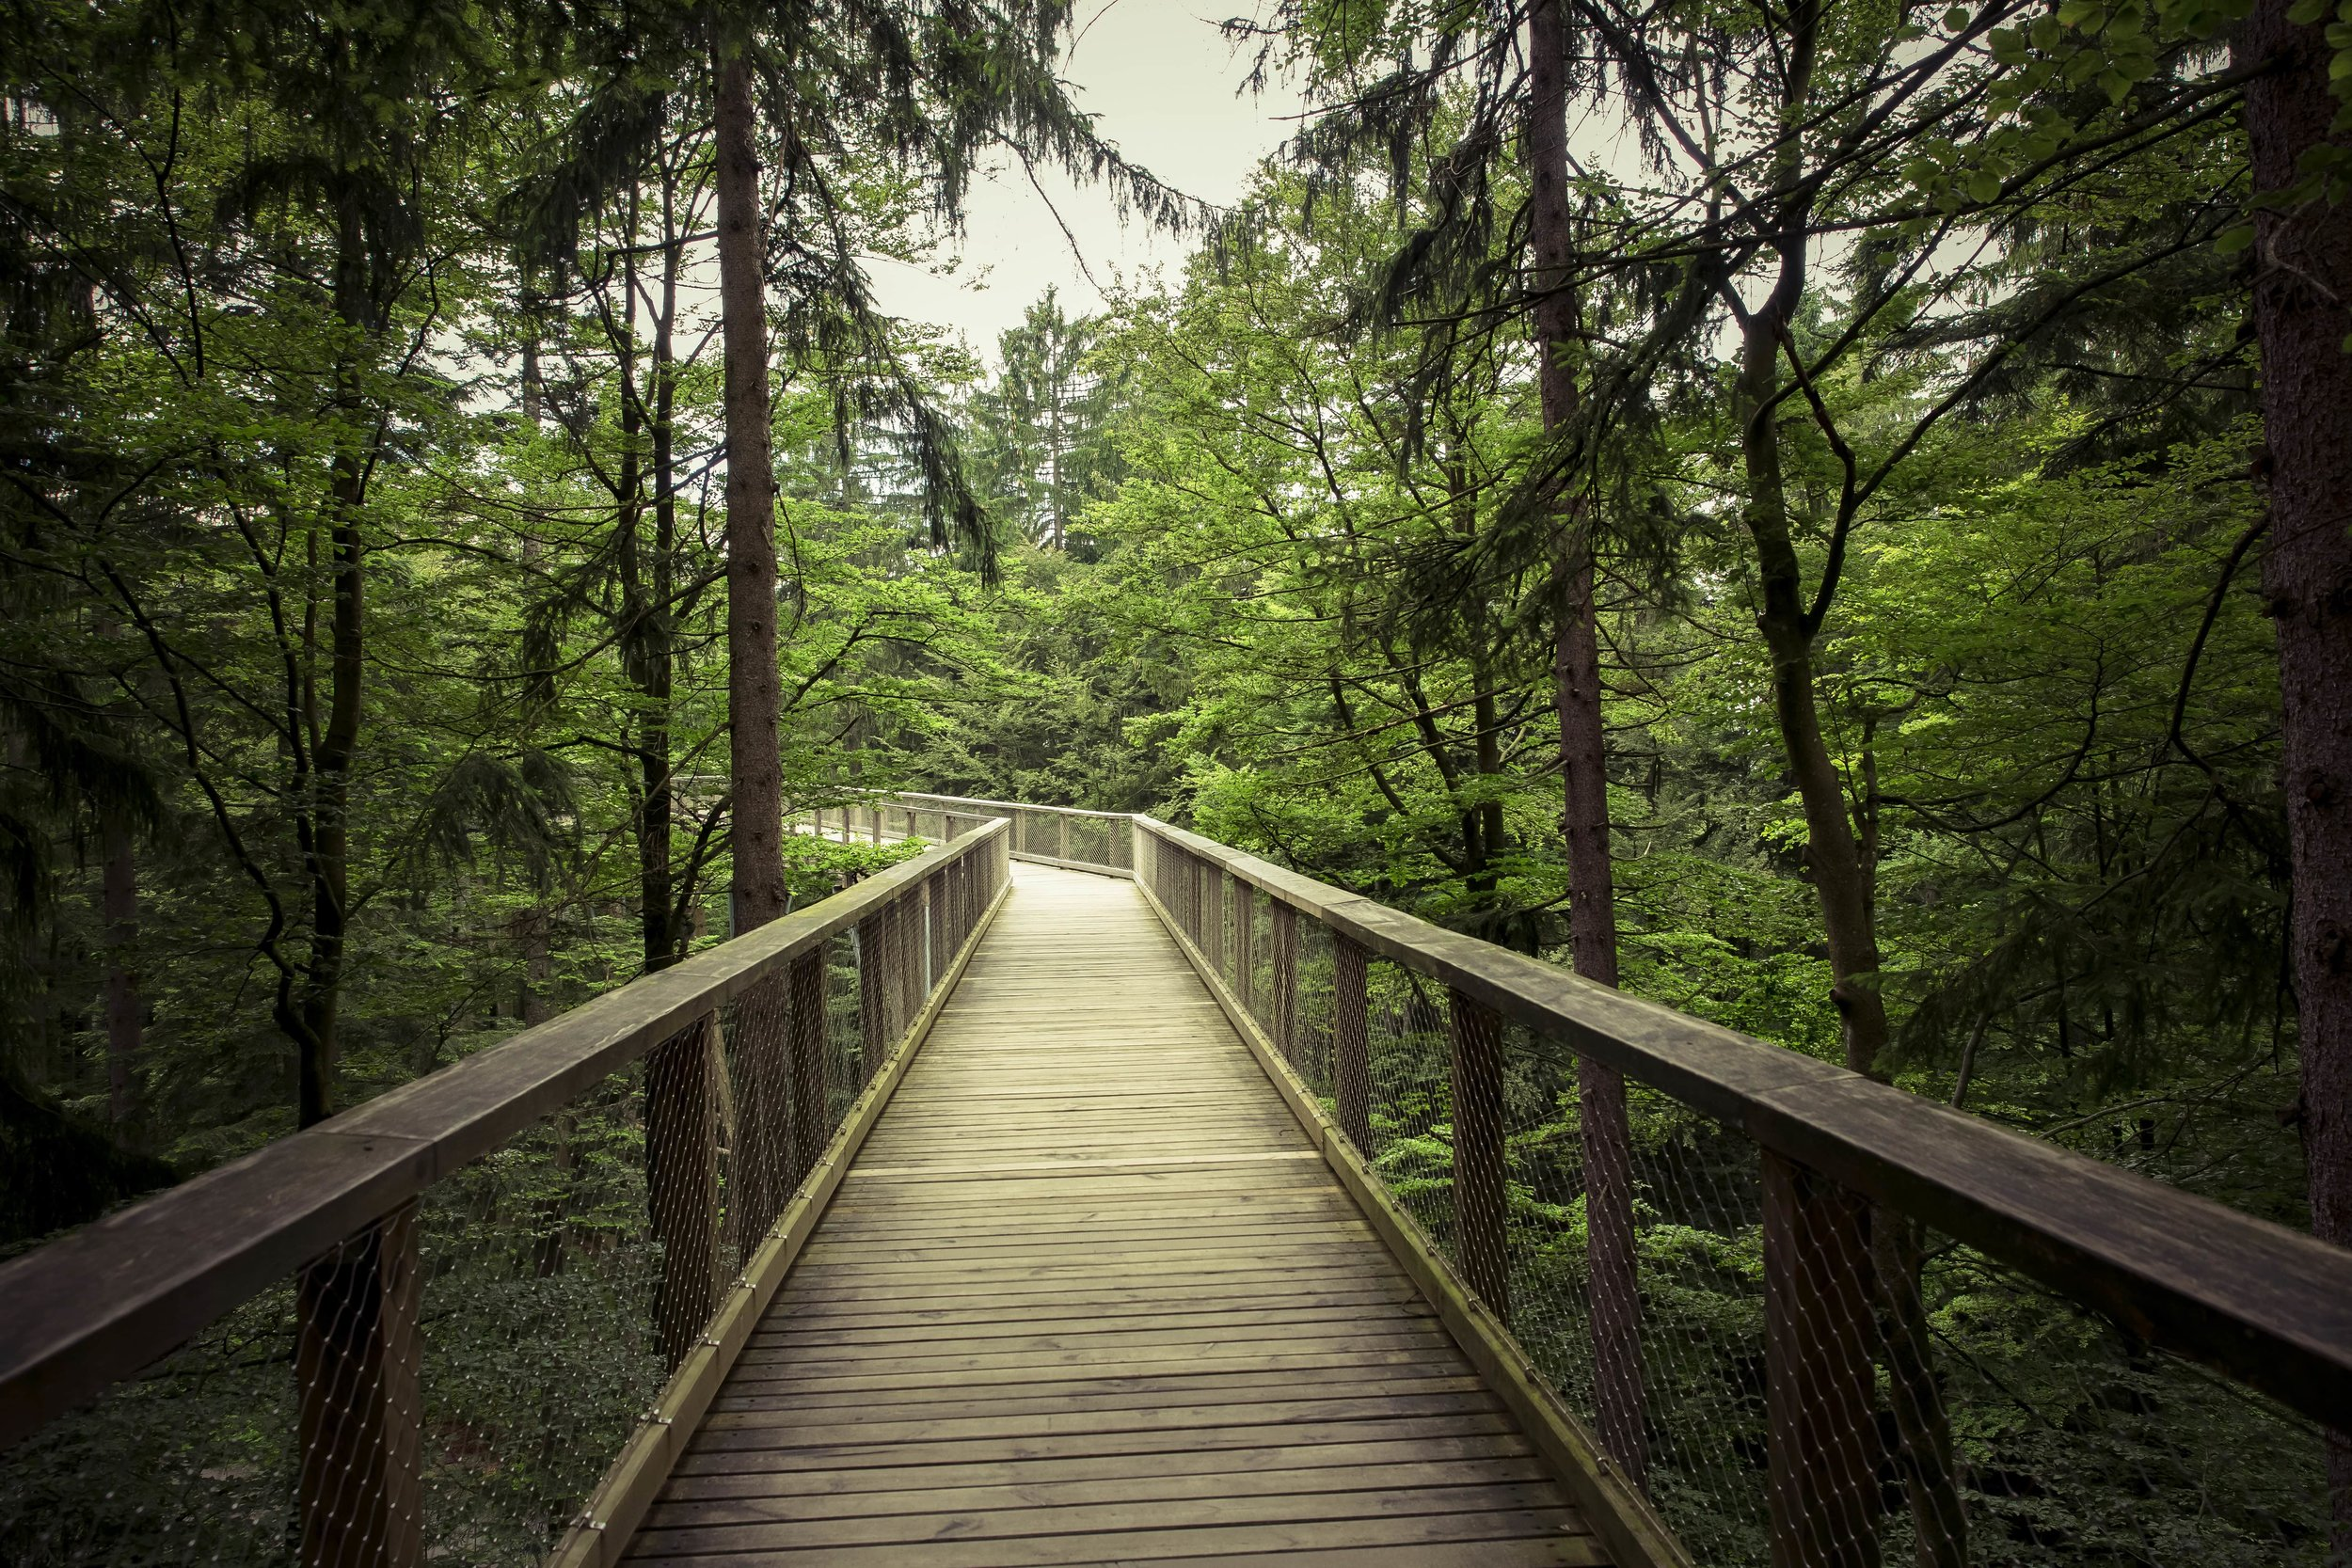 wooden bridge surrounded by green foliage